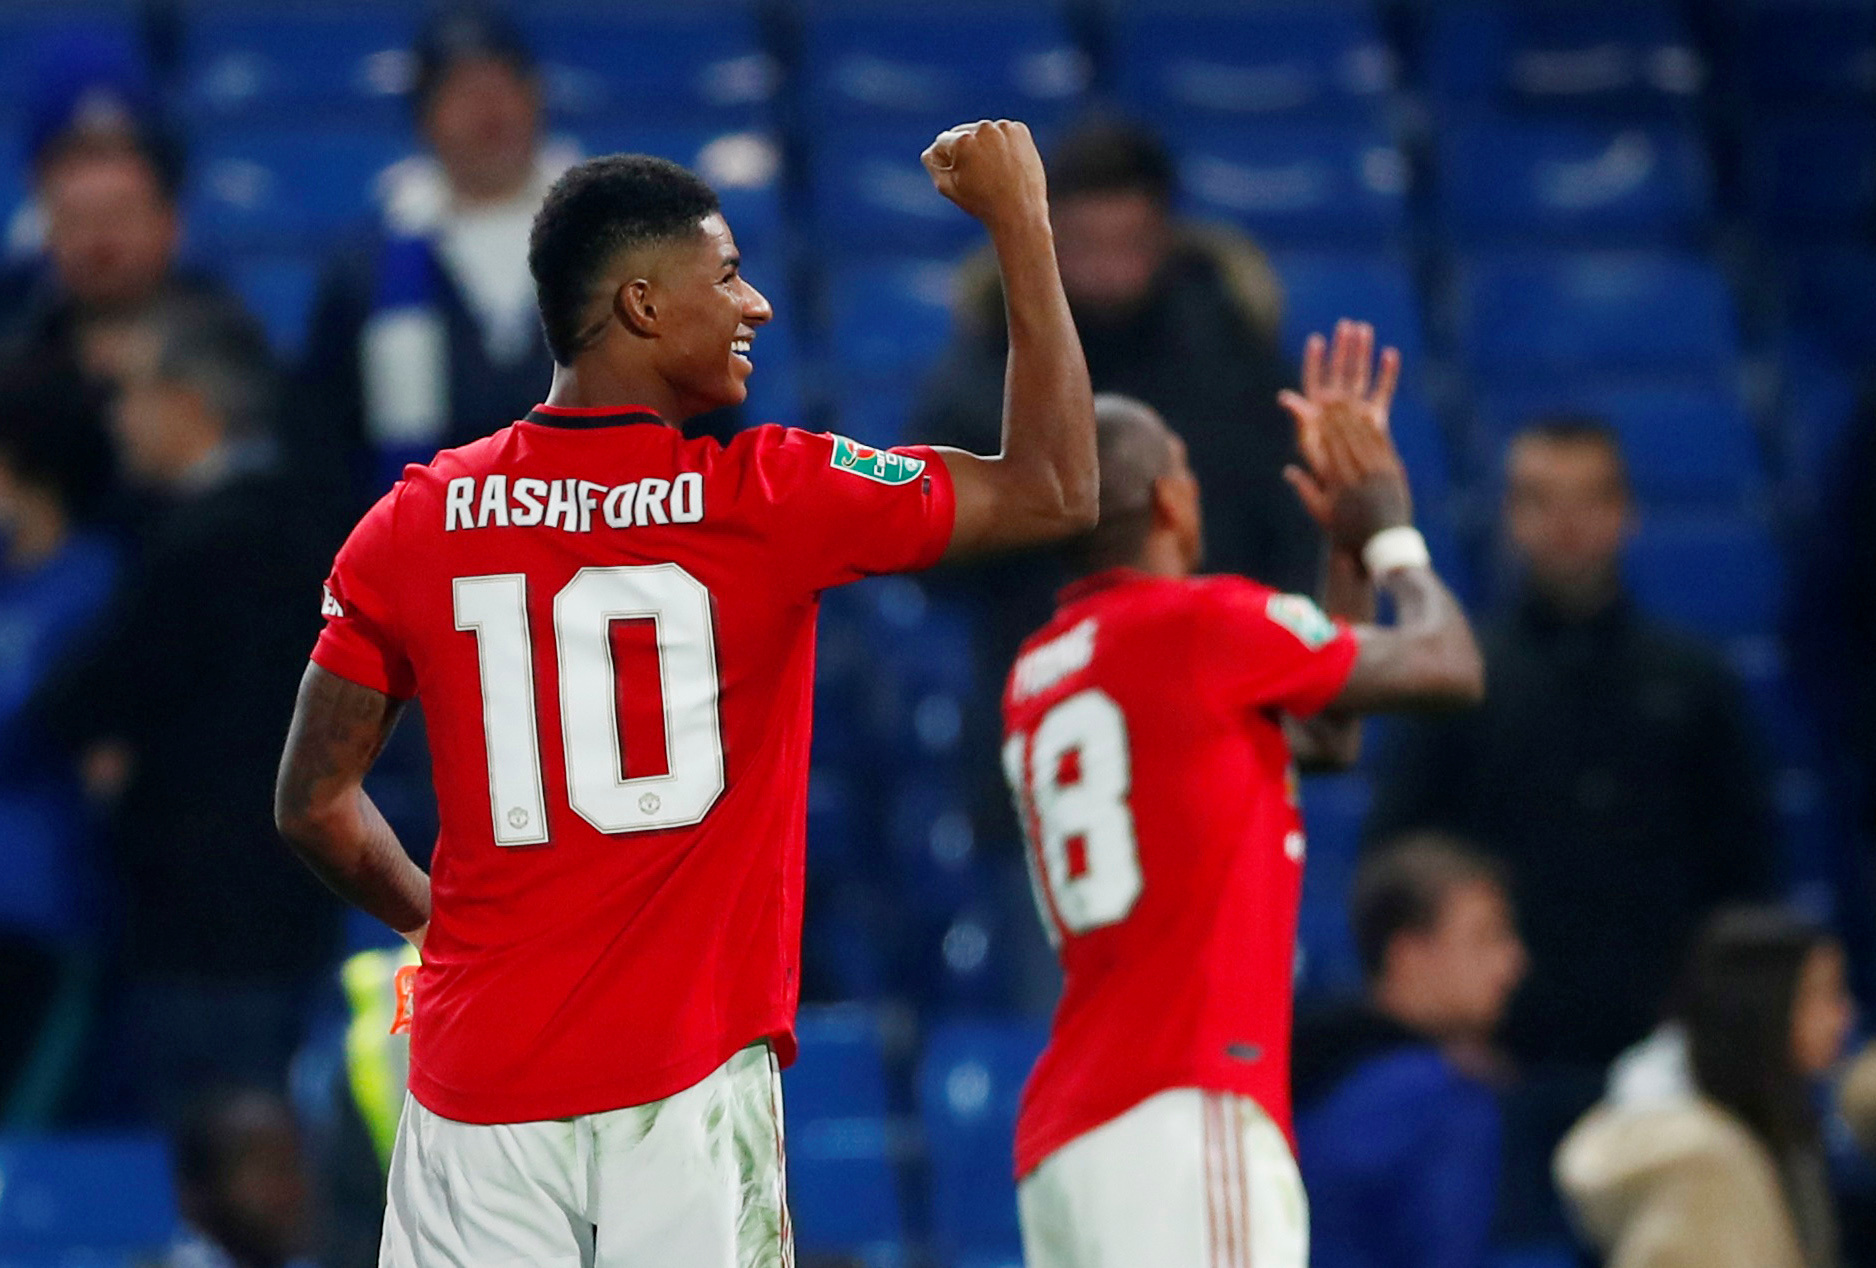 Rashford feels United are going places